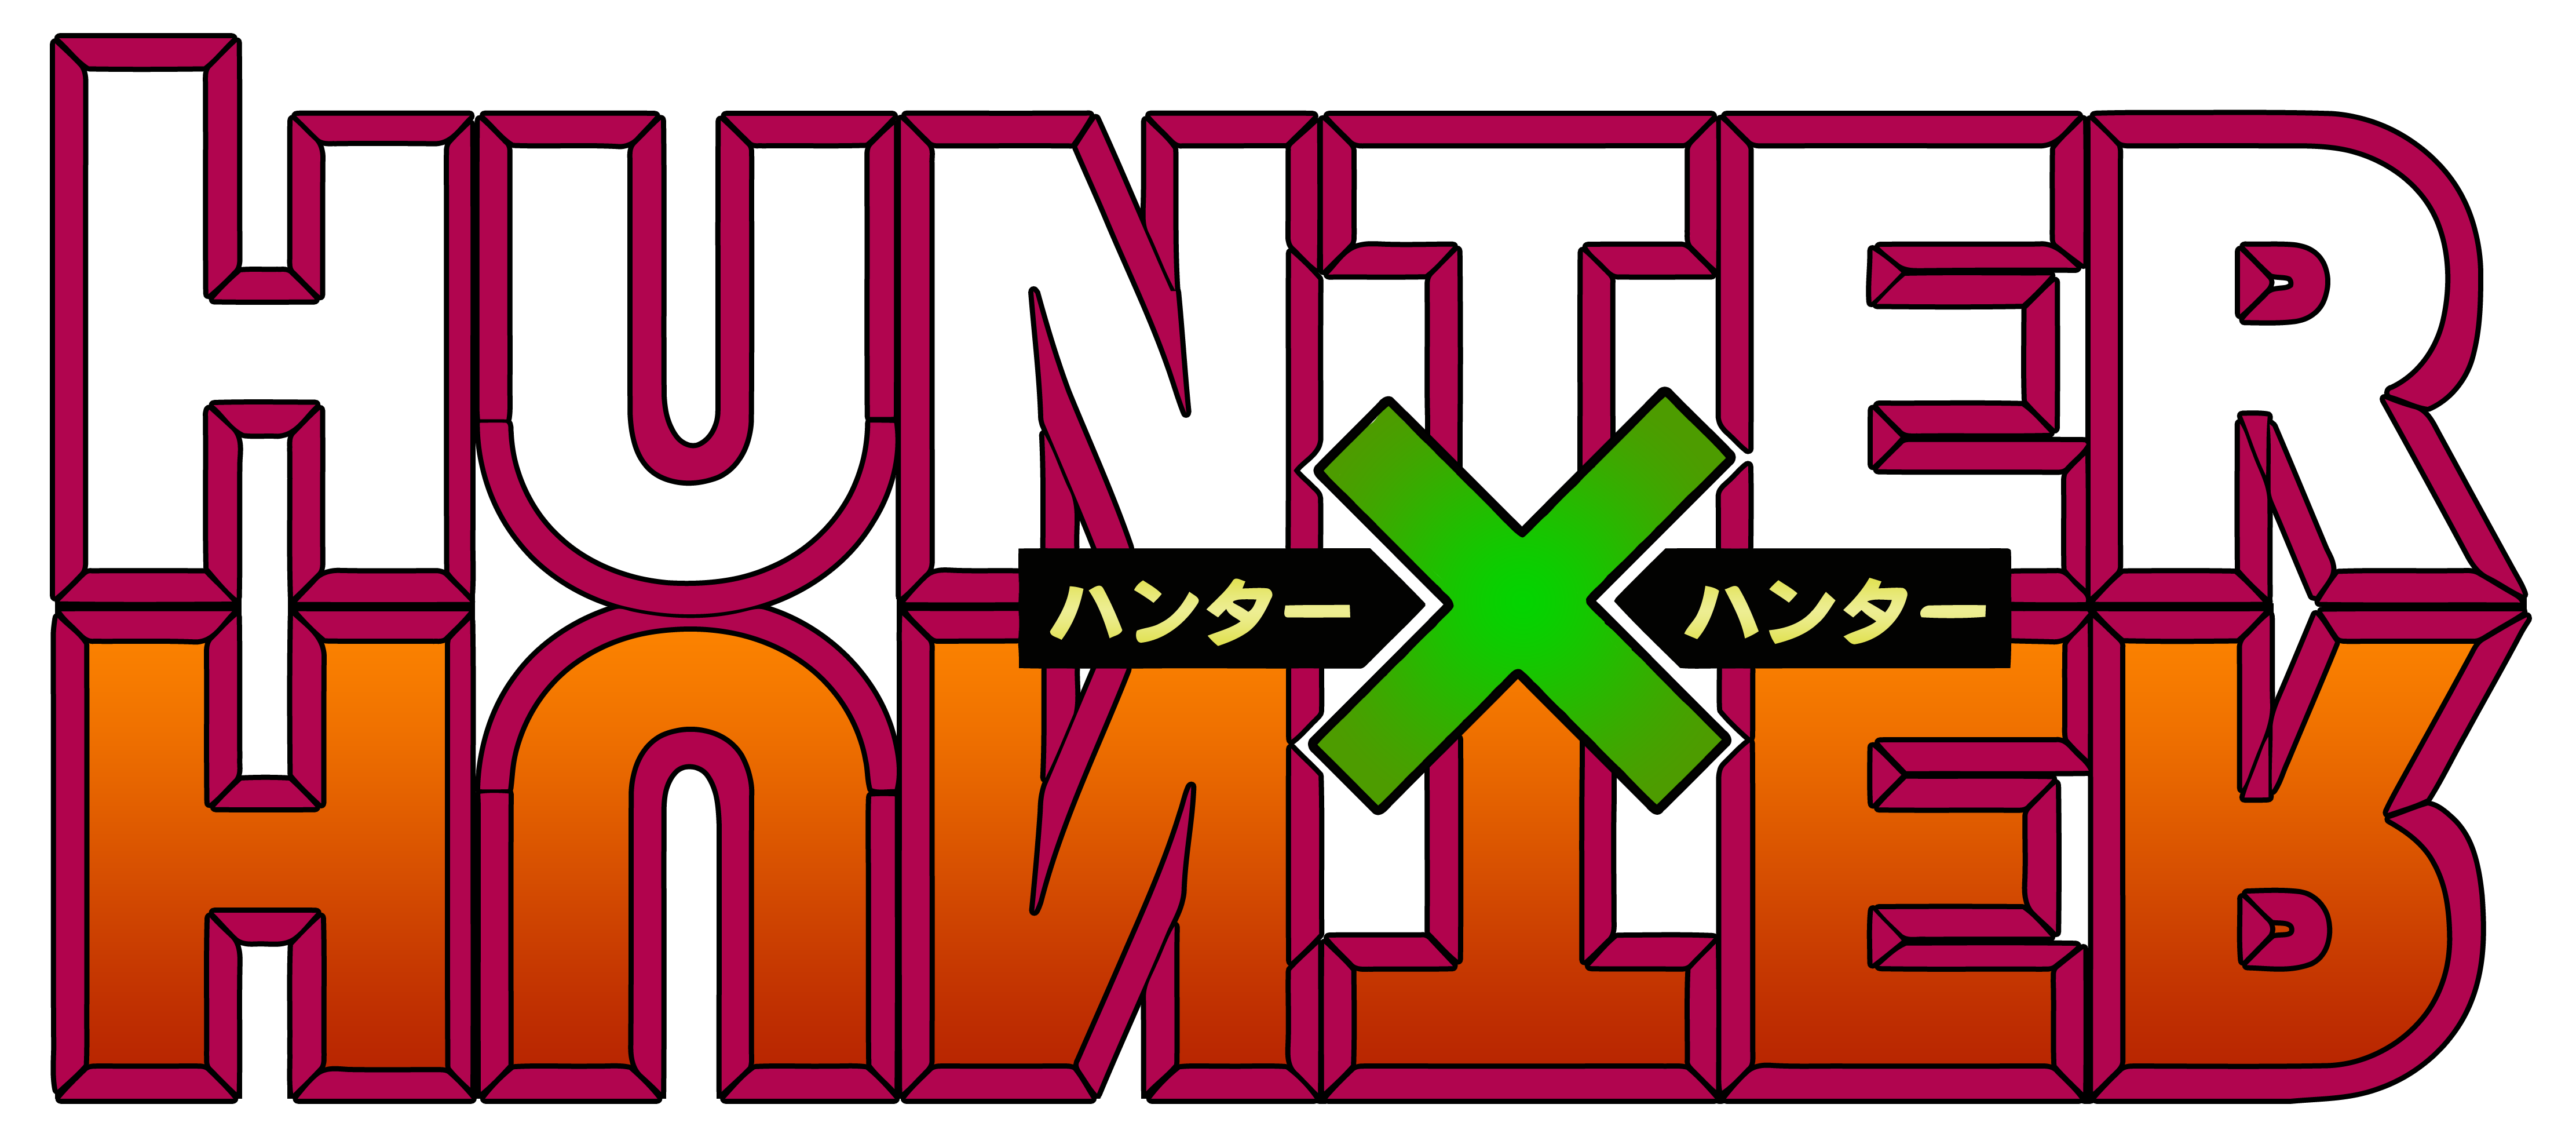 Search free hunter x hunter wallpapers on zedge and personalize your phone to suit you. Pin by Rio Odestila on Emblem, Icon, etc   Hunter logo ...